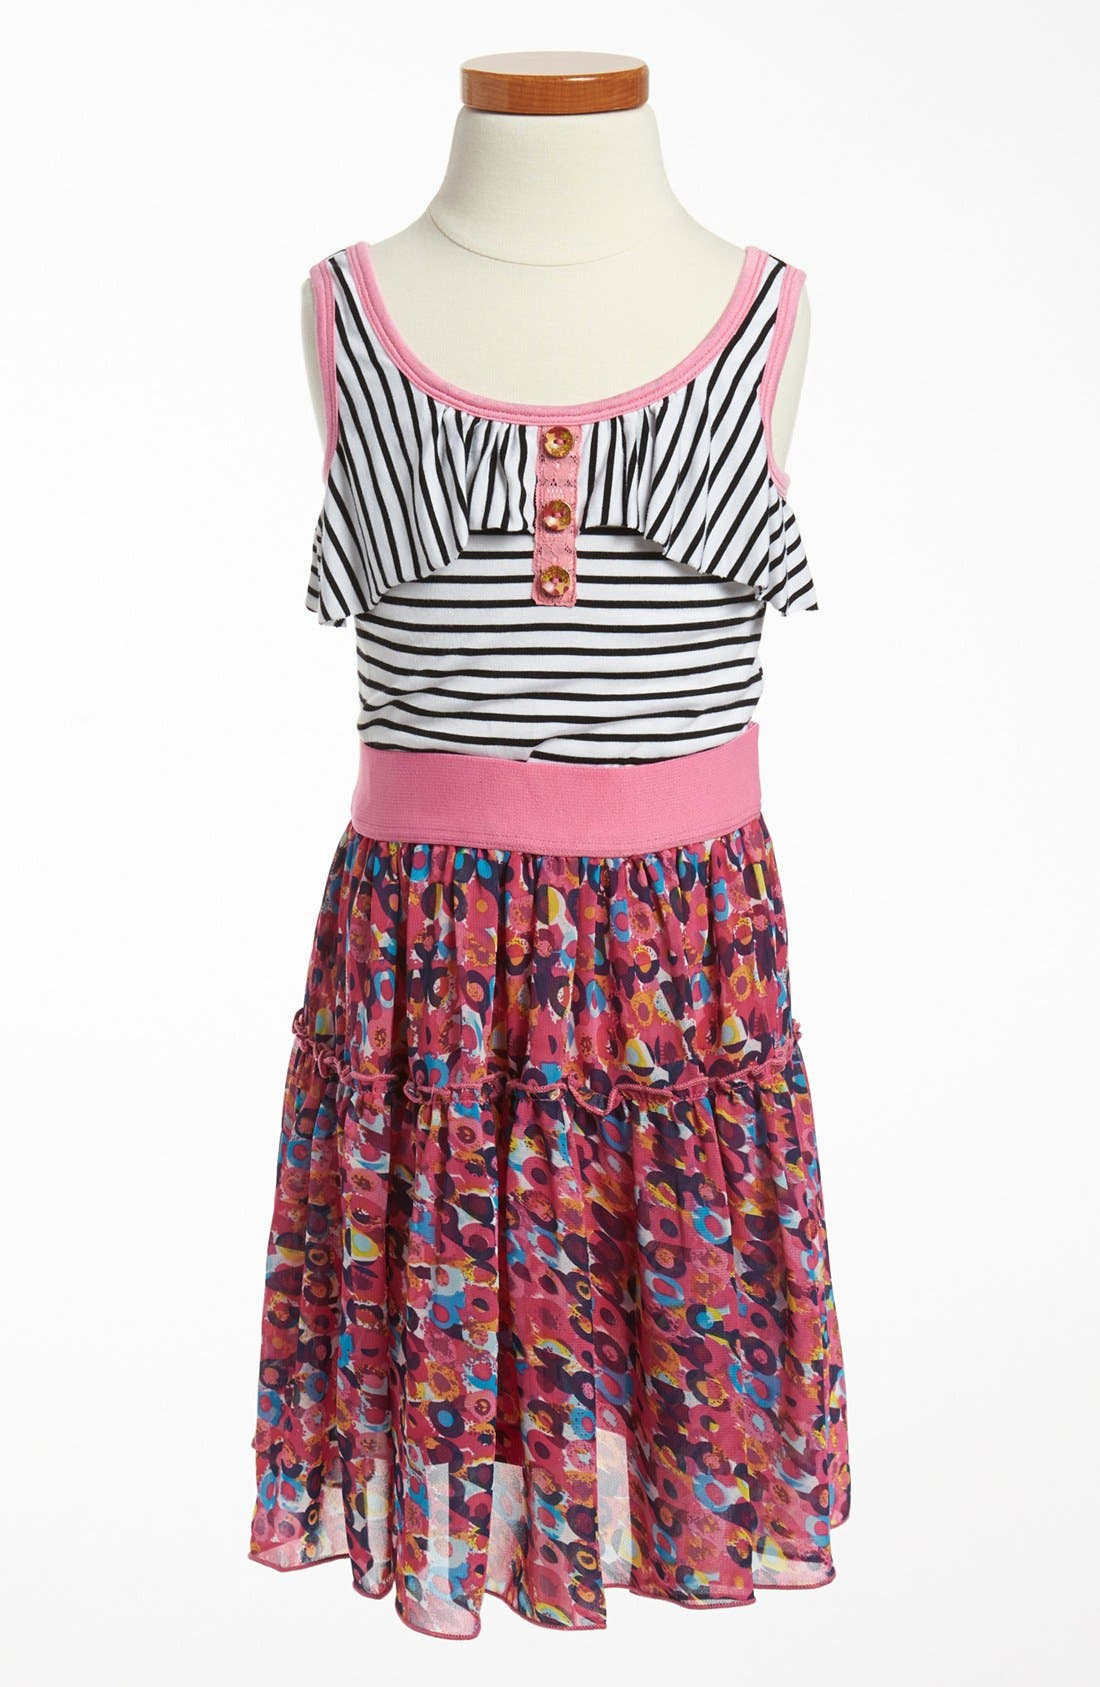 Main Image - Truly Me Sleeveless Stripe Dress (Little Girls & Big Girls)